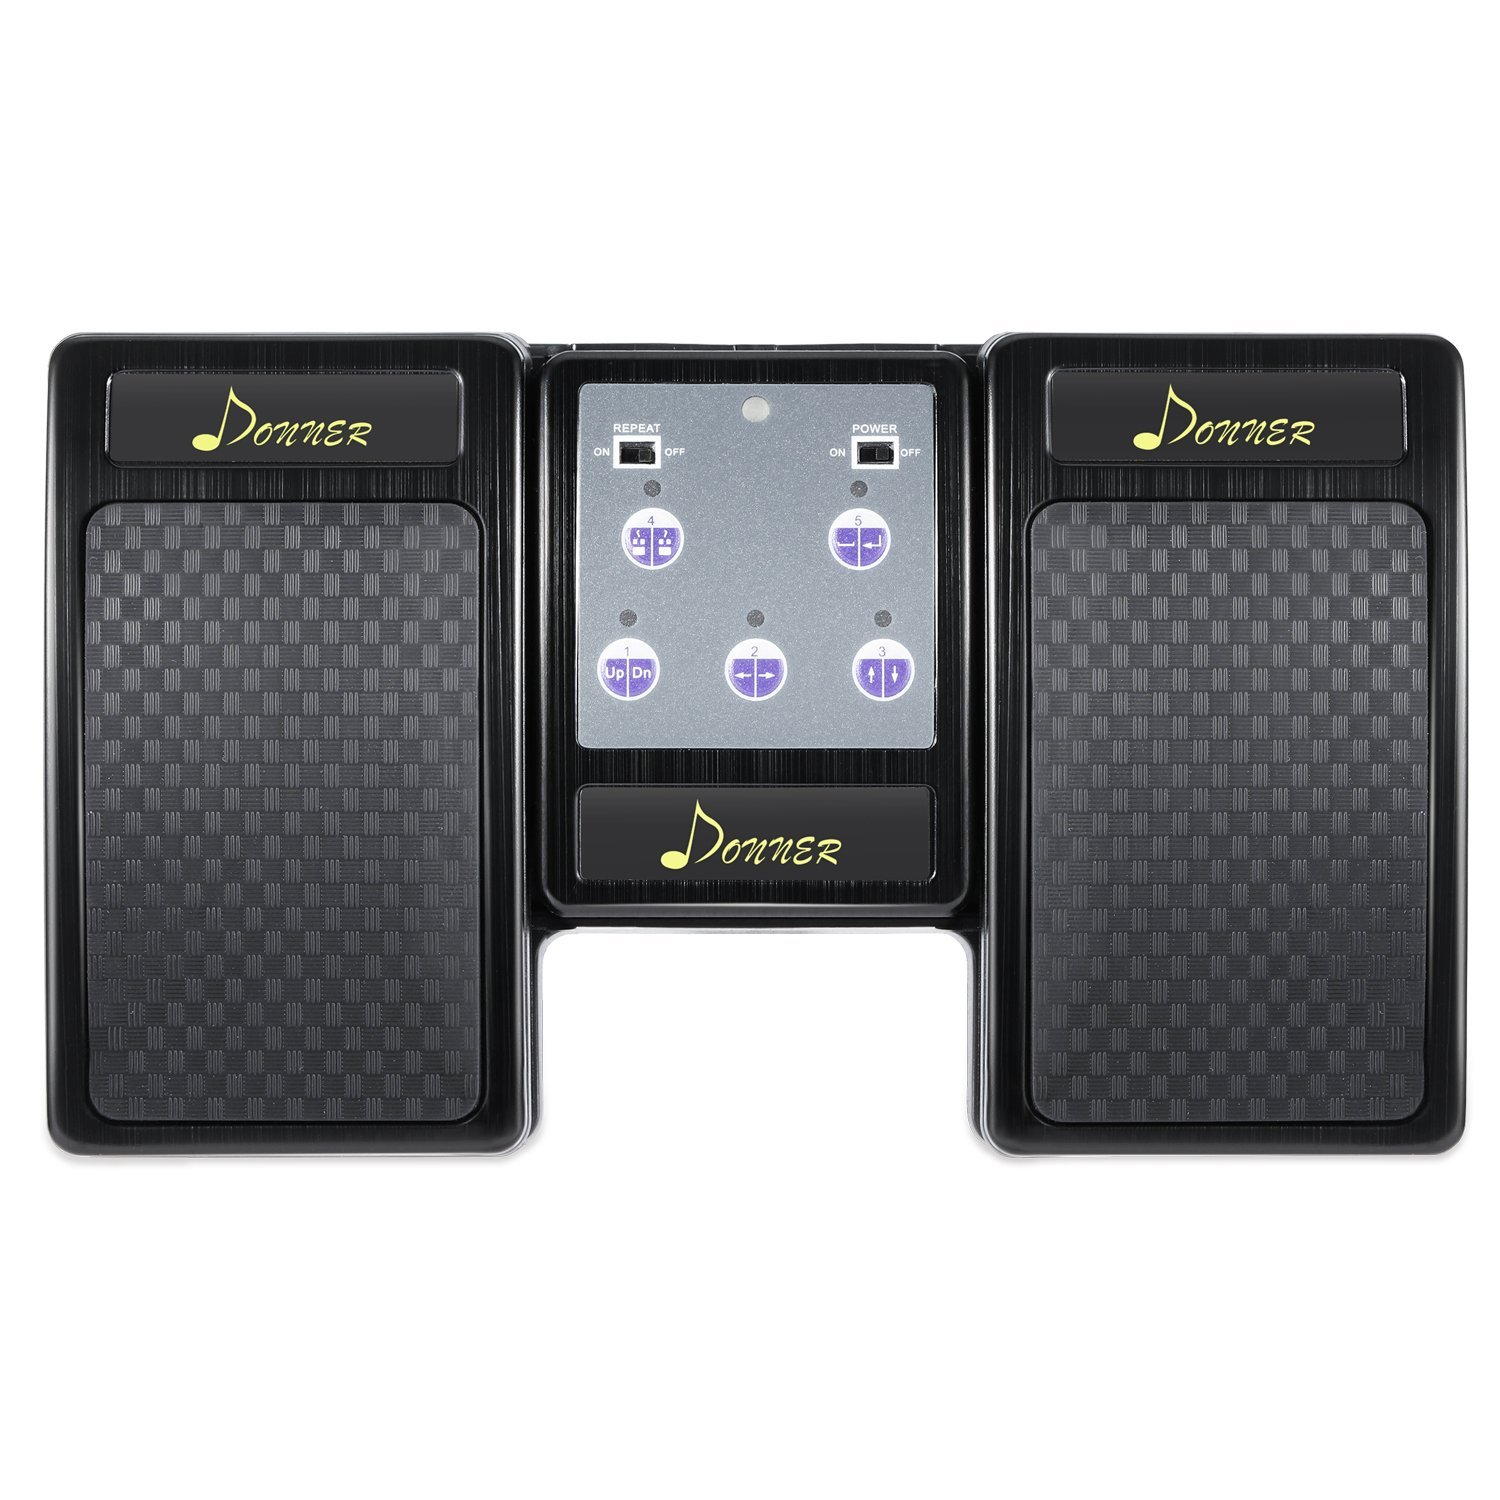 donner bluetooth page turner pedal for tablets ipad rechargeable black. Black Bedroom Furniture Sets. Home Design Ideas